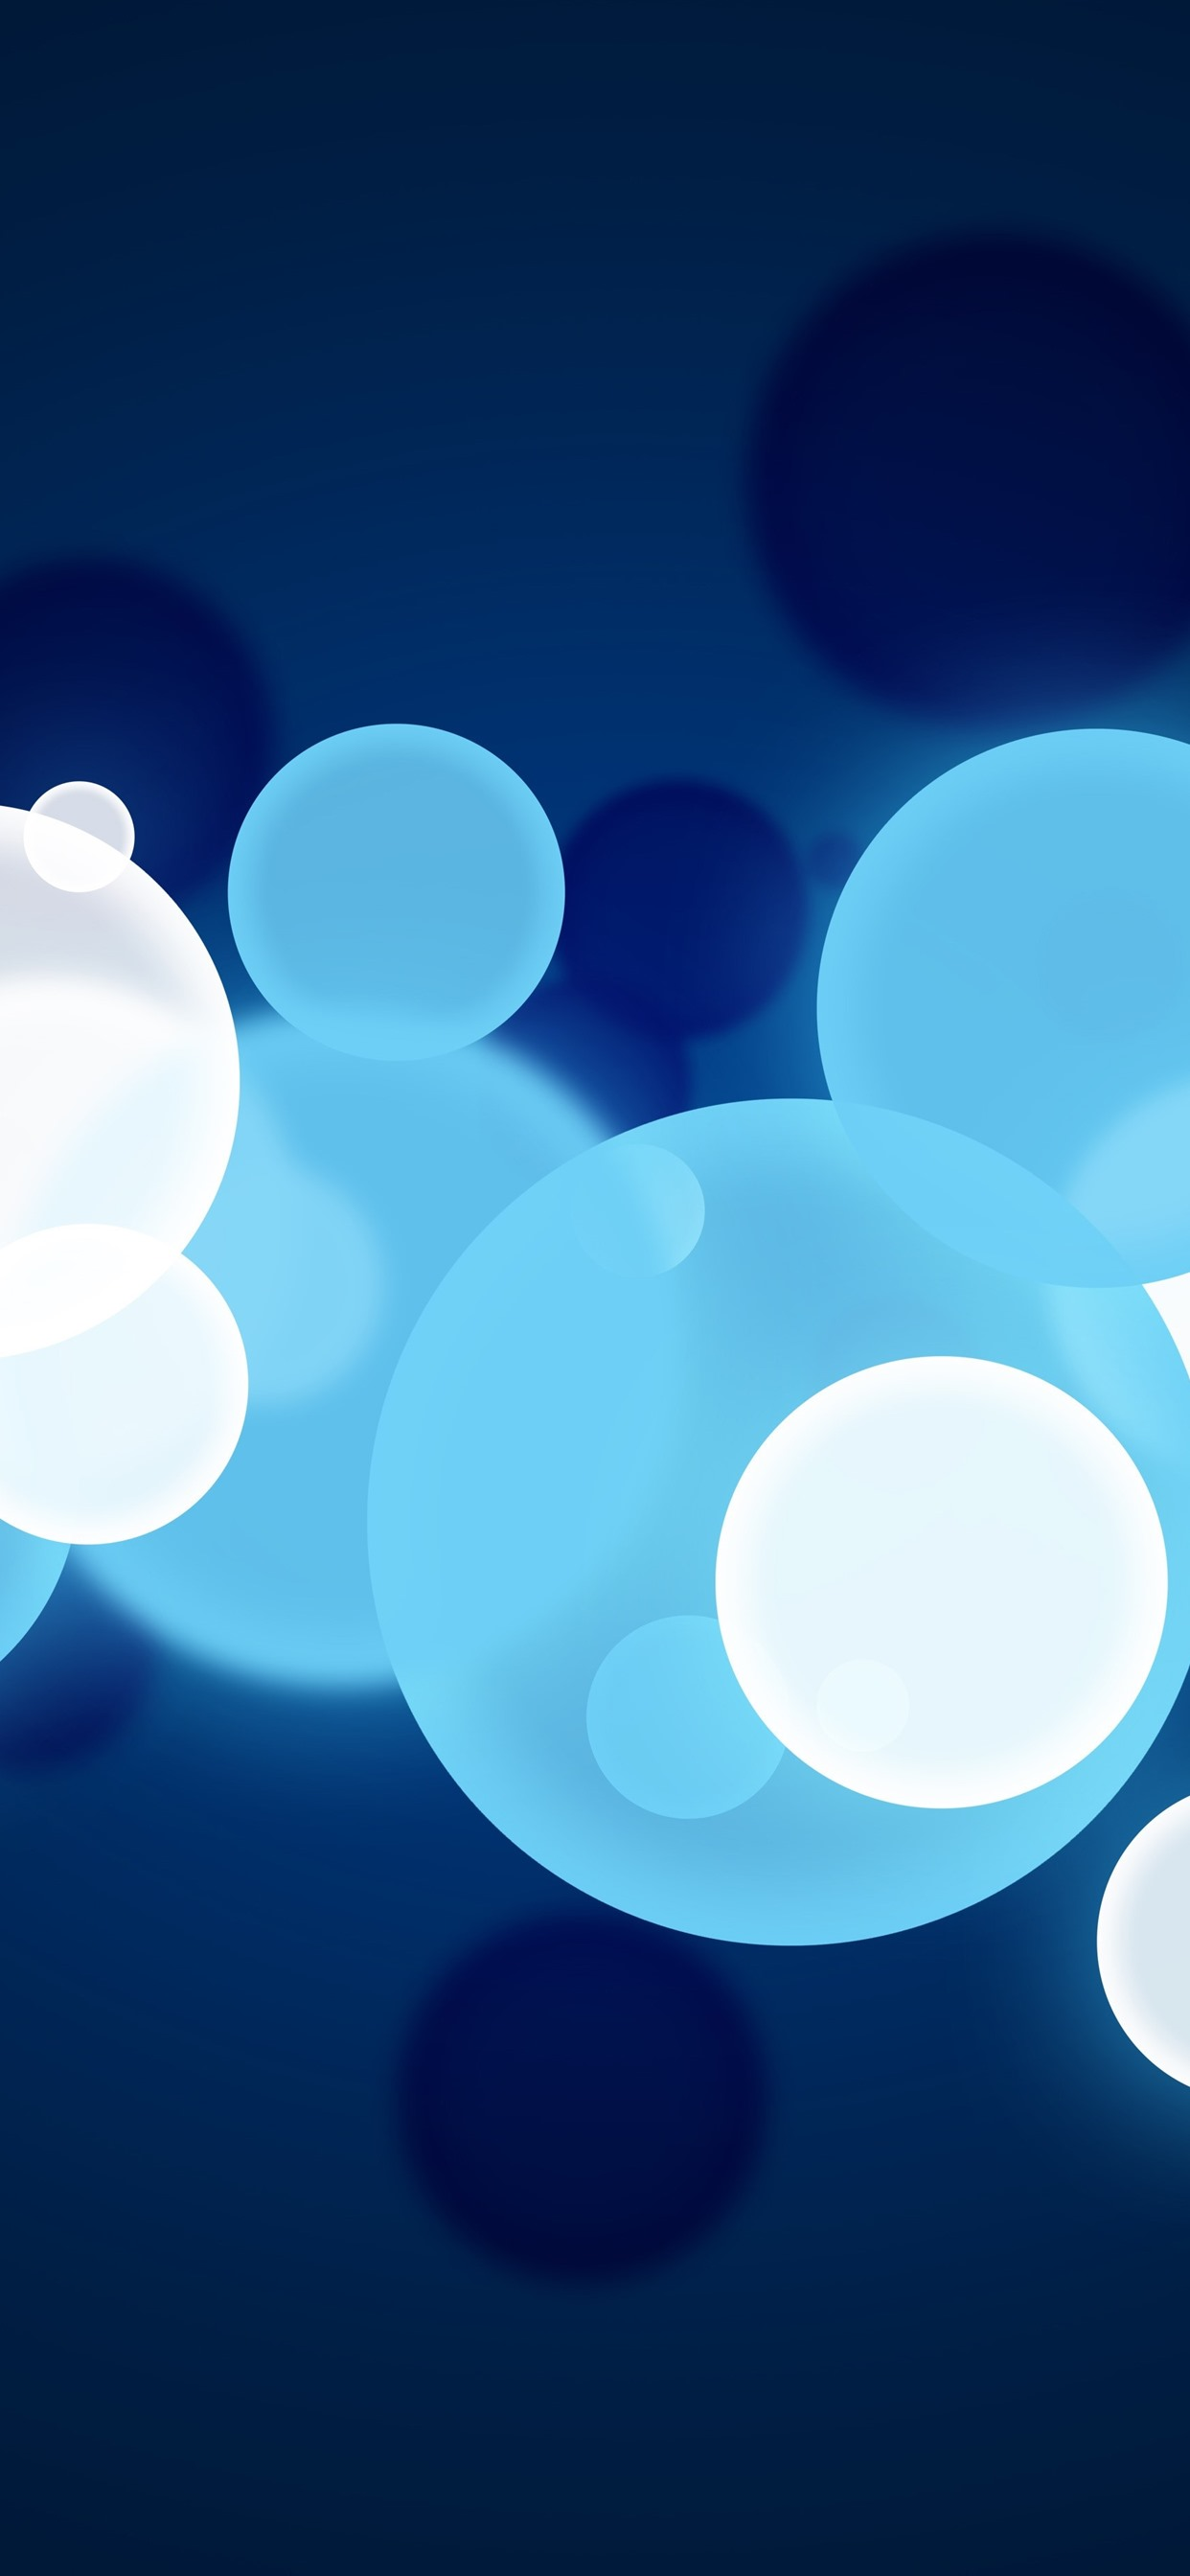 Blue And White Bubbles Abstract 1242x2688 Iphone 11 Pro Xs Max Wallpaper Background Picture Image